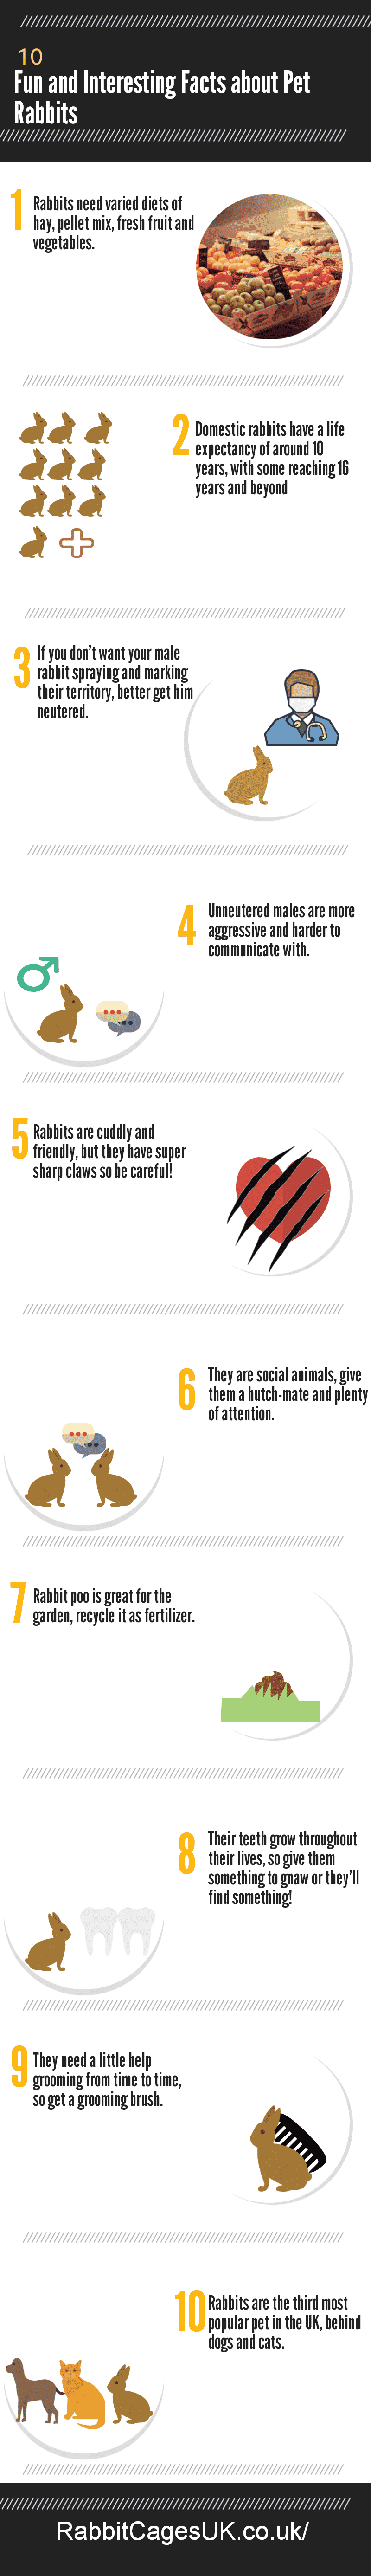 10 Fun and Interesting Facts about Pet Rabbits Infographic